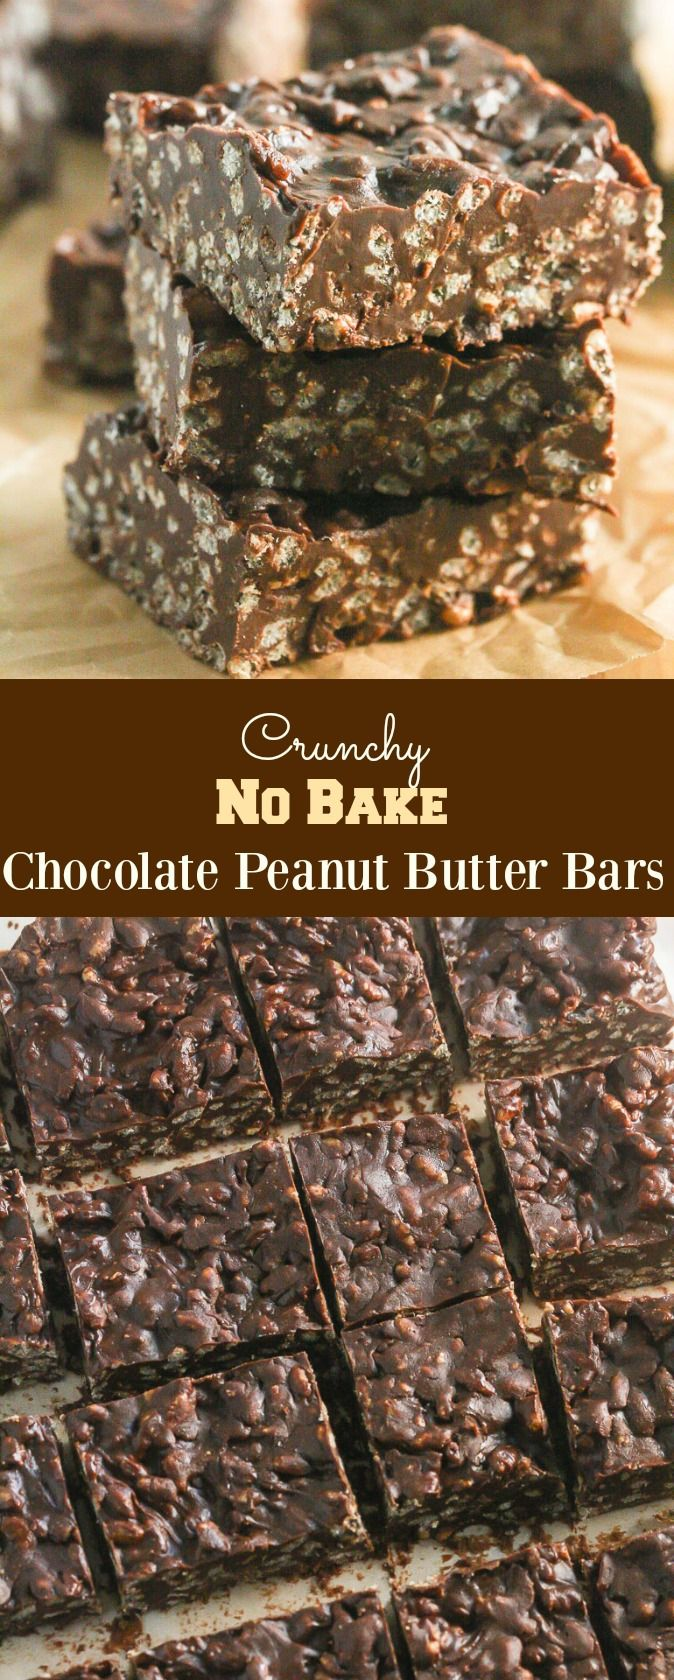 Crunchy No Bake Chocolate Peanut Butter Bars from The Weeknight Dinner Cookbook